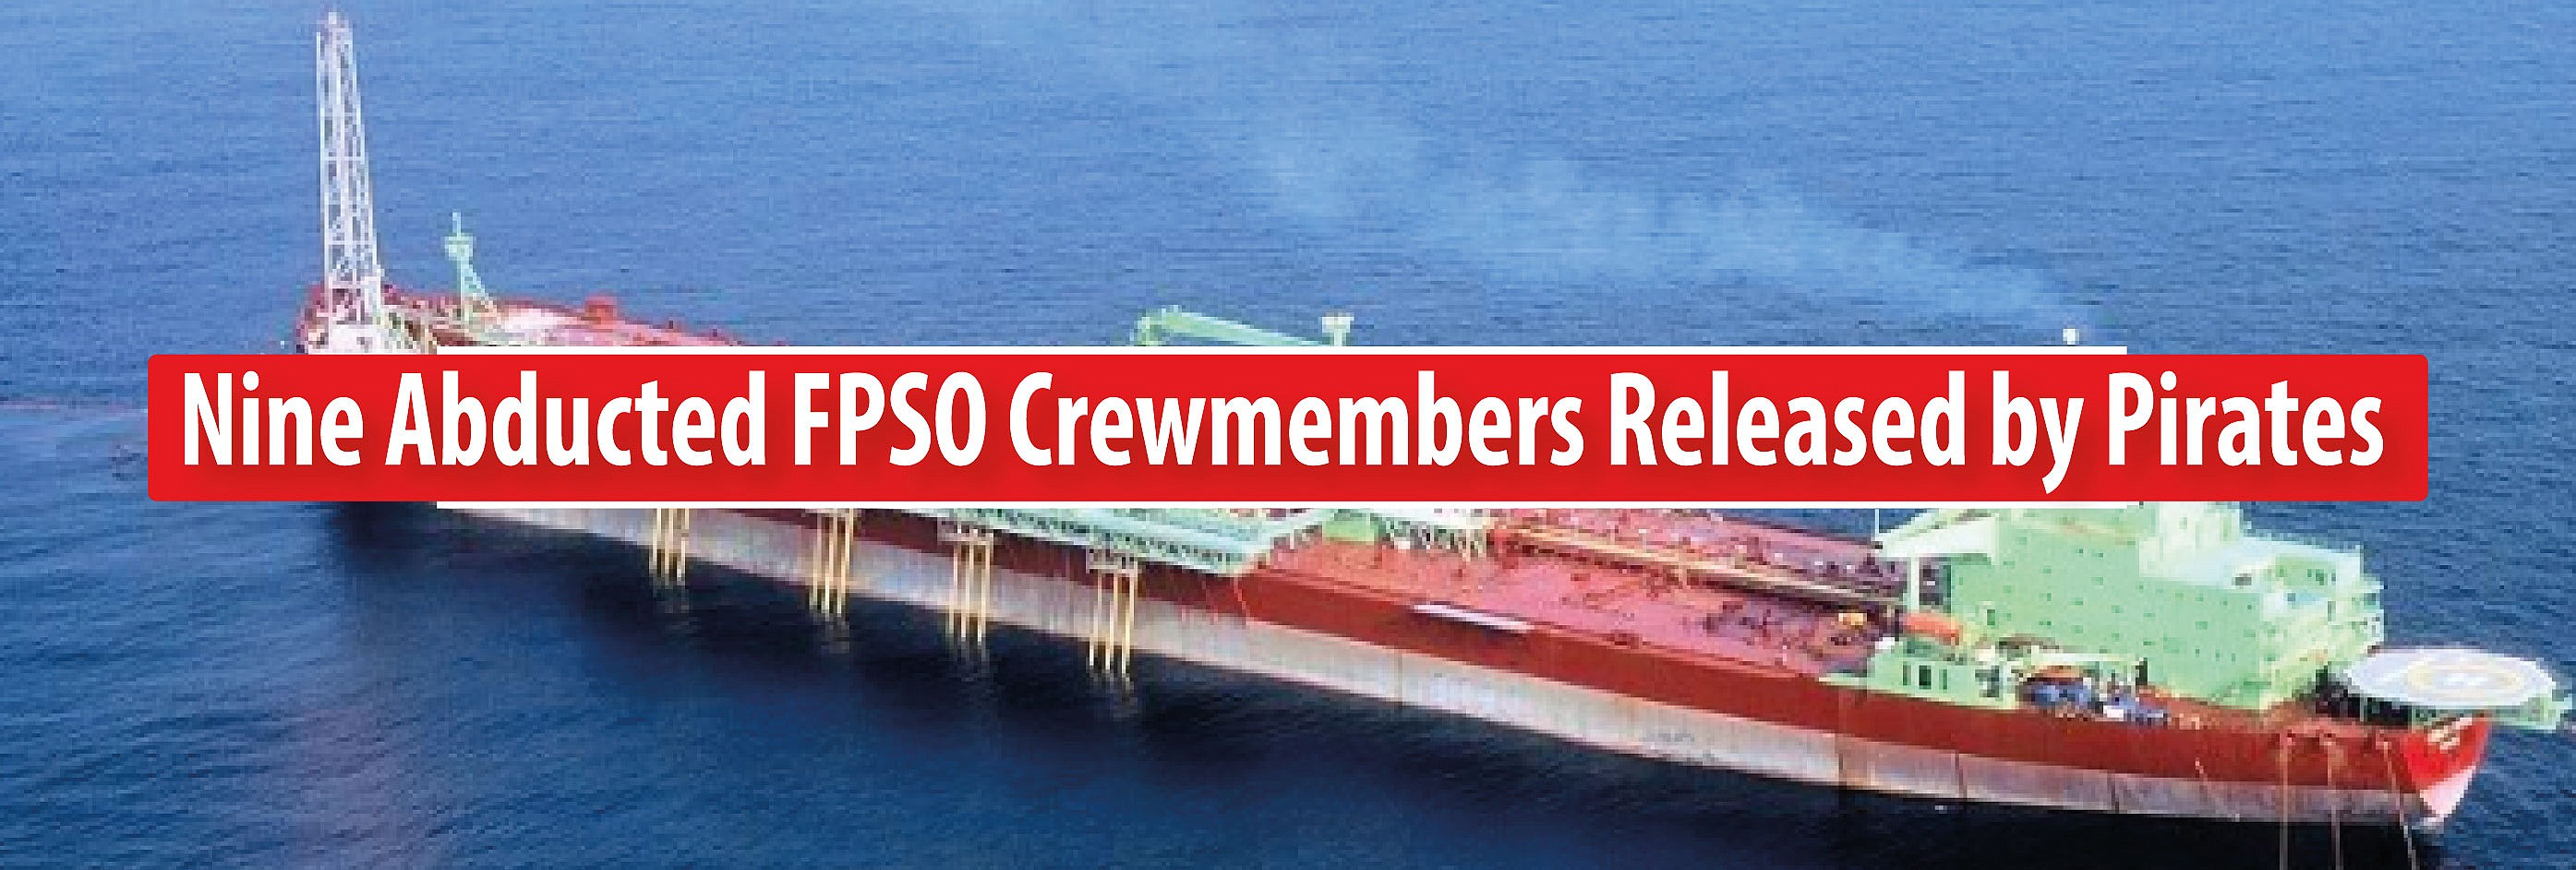 Nine Abducted FPSO Crewmembers Released by Pirates